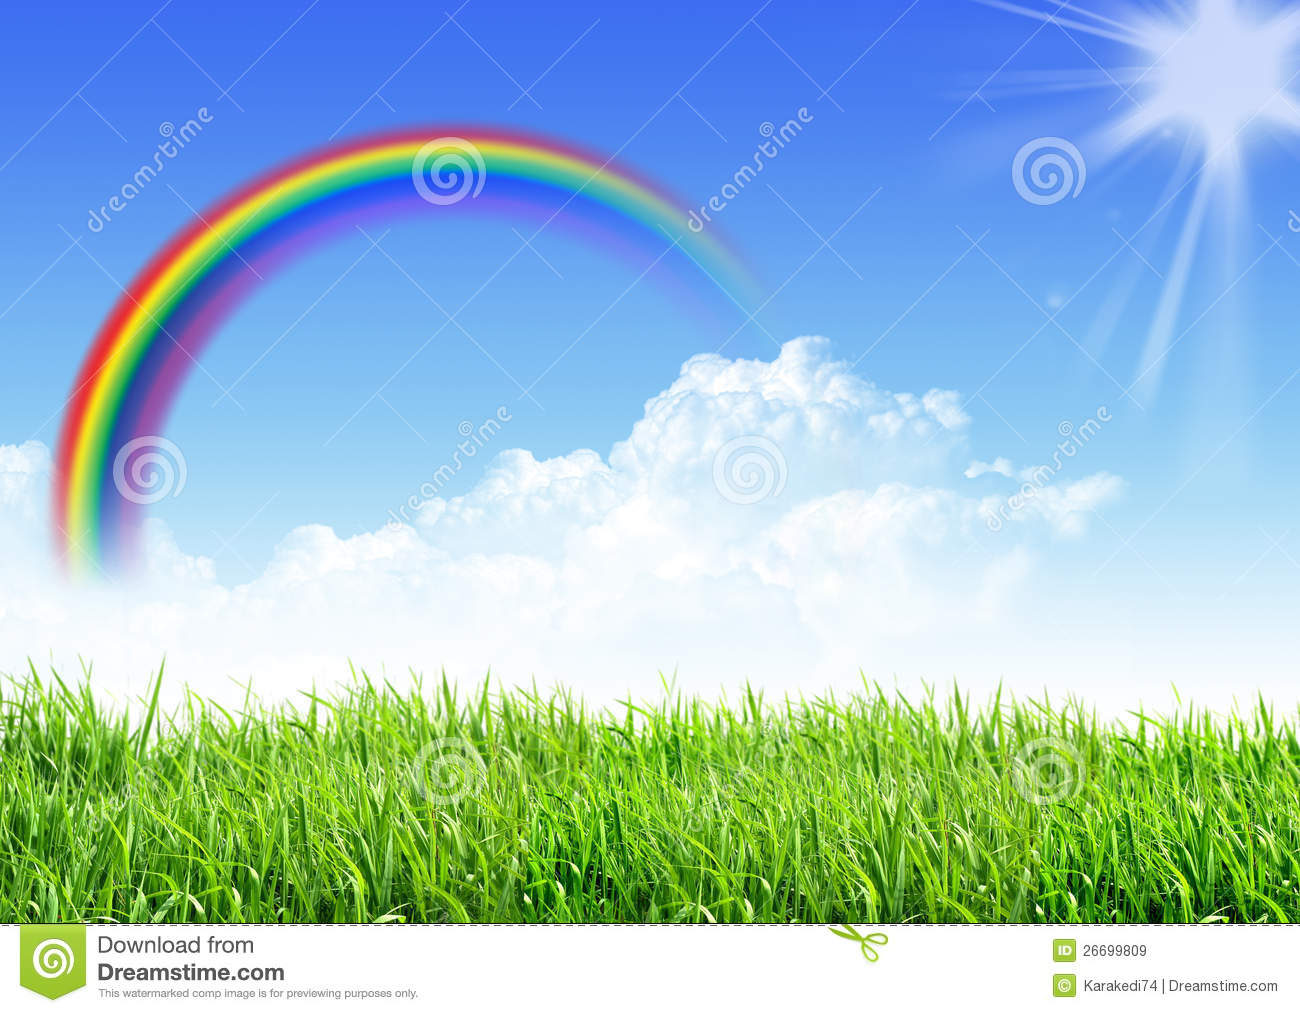 3d Moving Animation Wallpaper Download Sky Grass Rainbow Royalty Free Stock Images Image 26699809